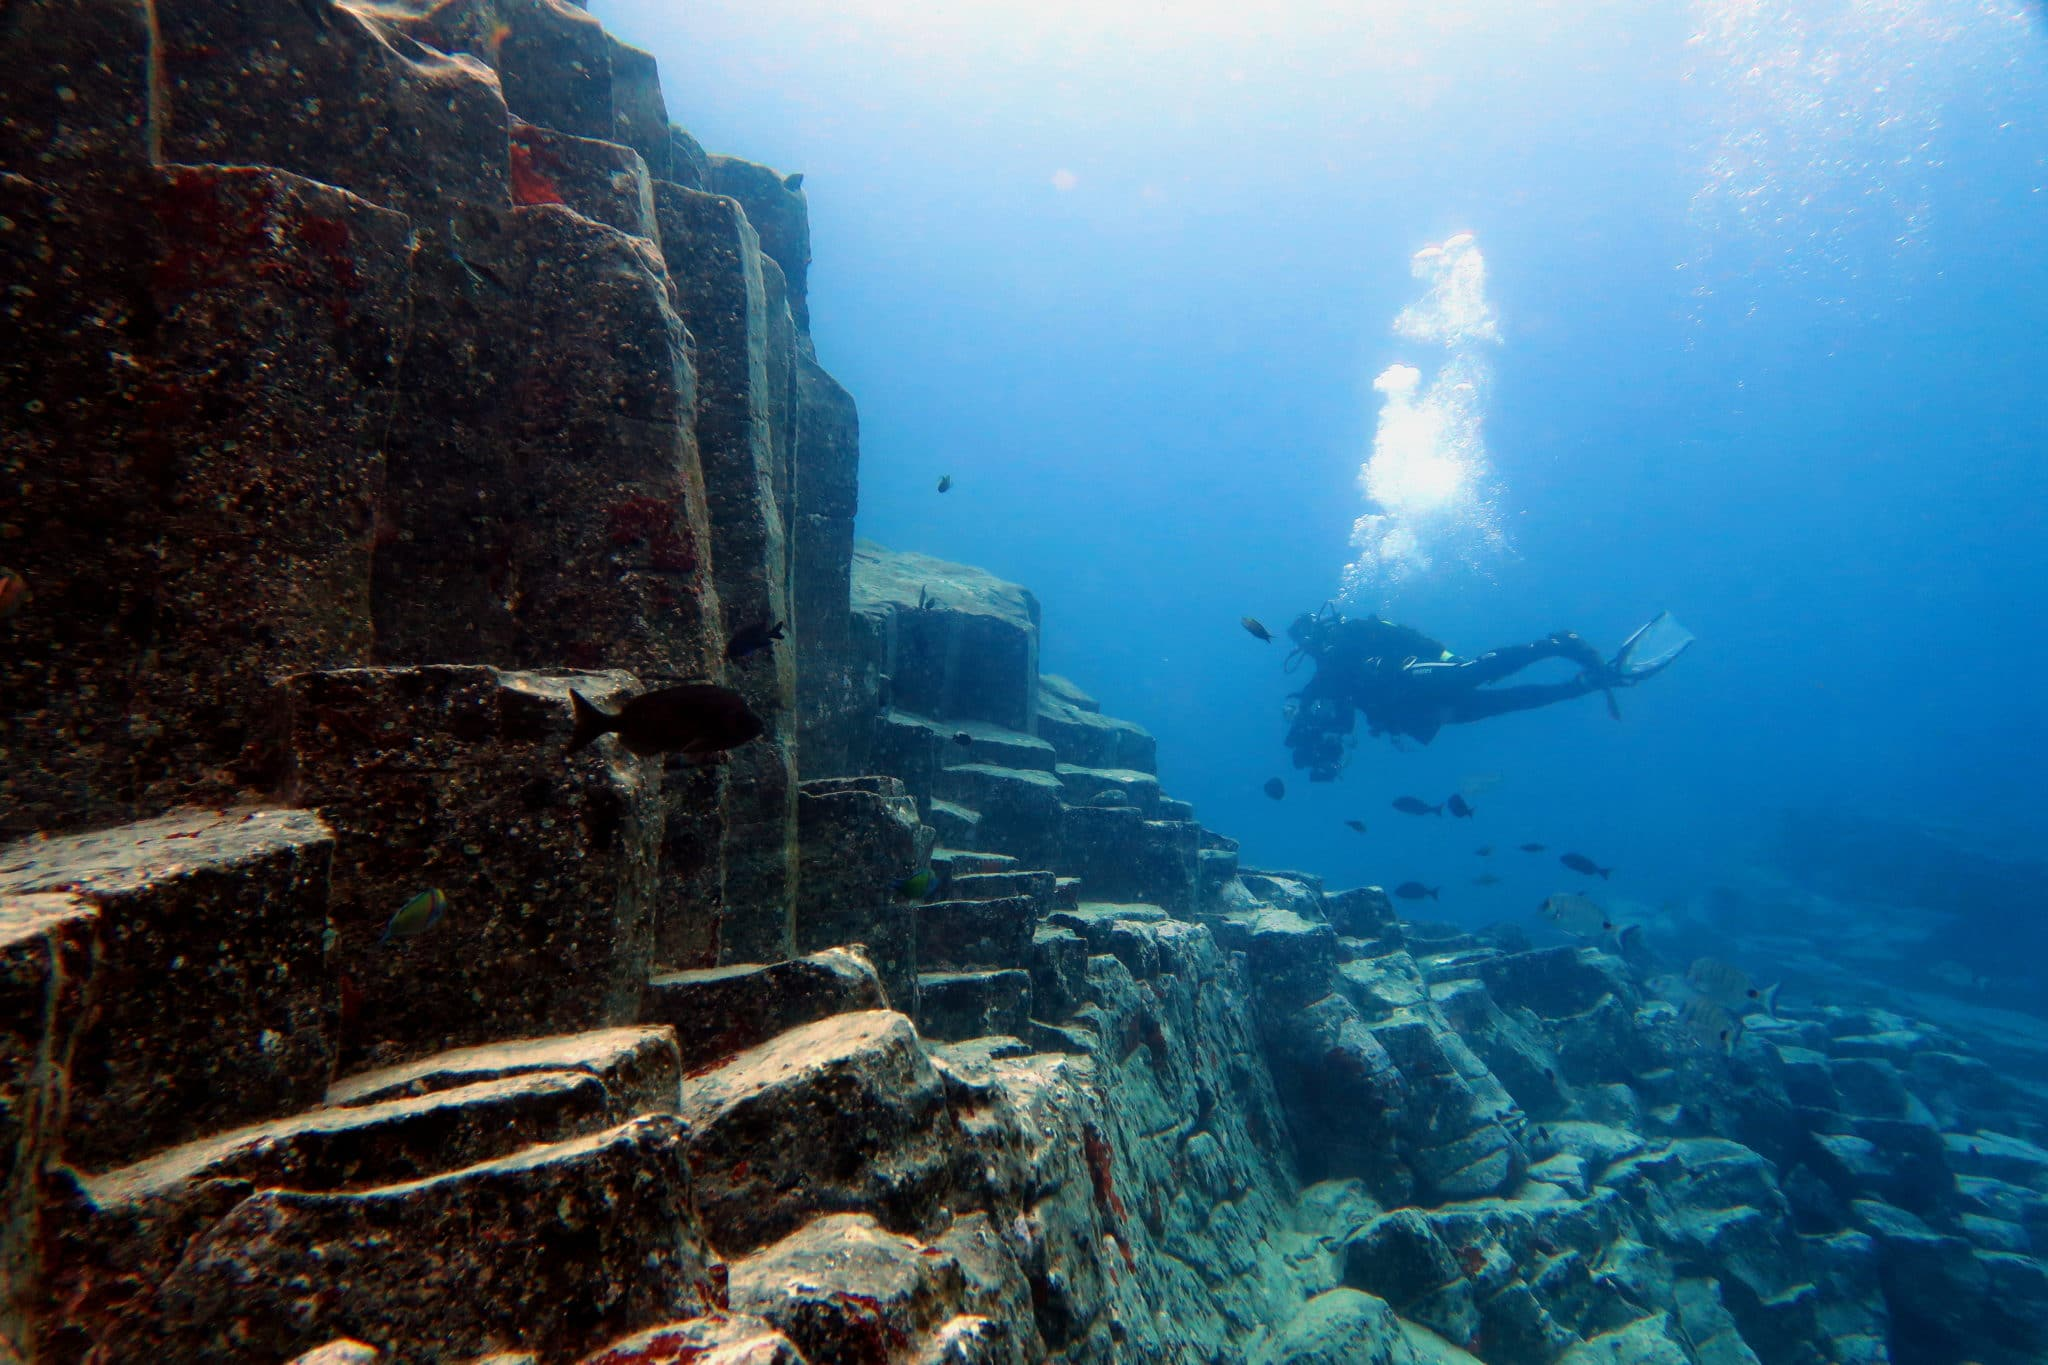 Basalt Columns Scuba diving Tenerife Canary Islands